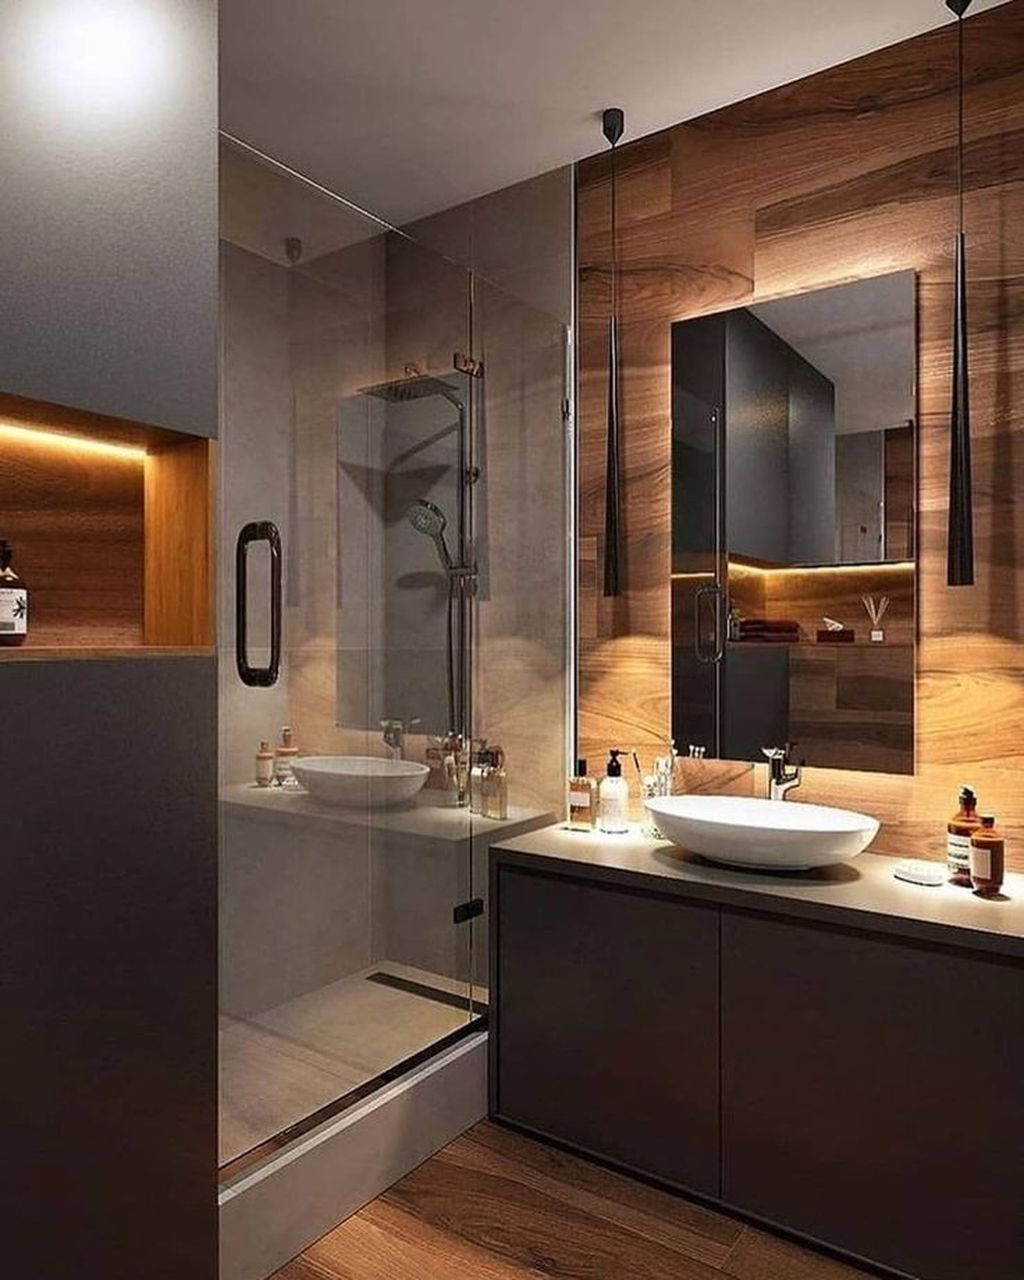 Inspiring Bathroom Interior Design Ideas 11